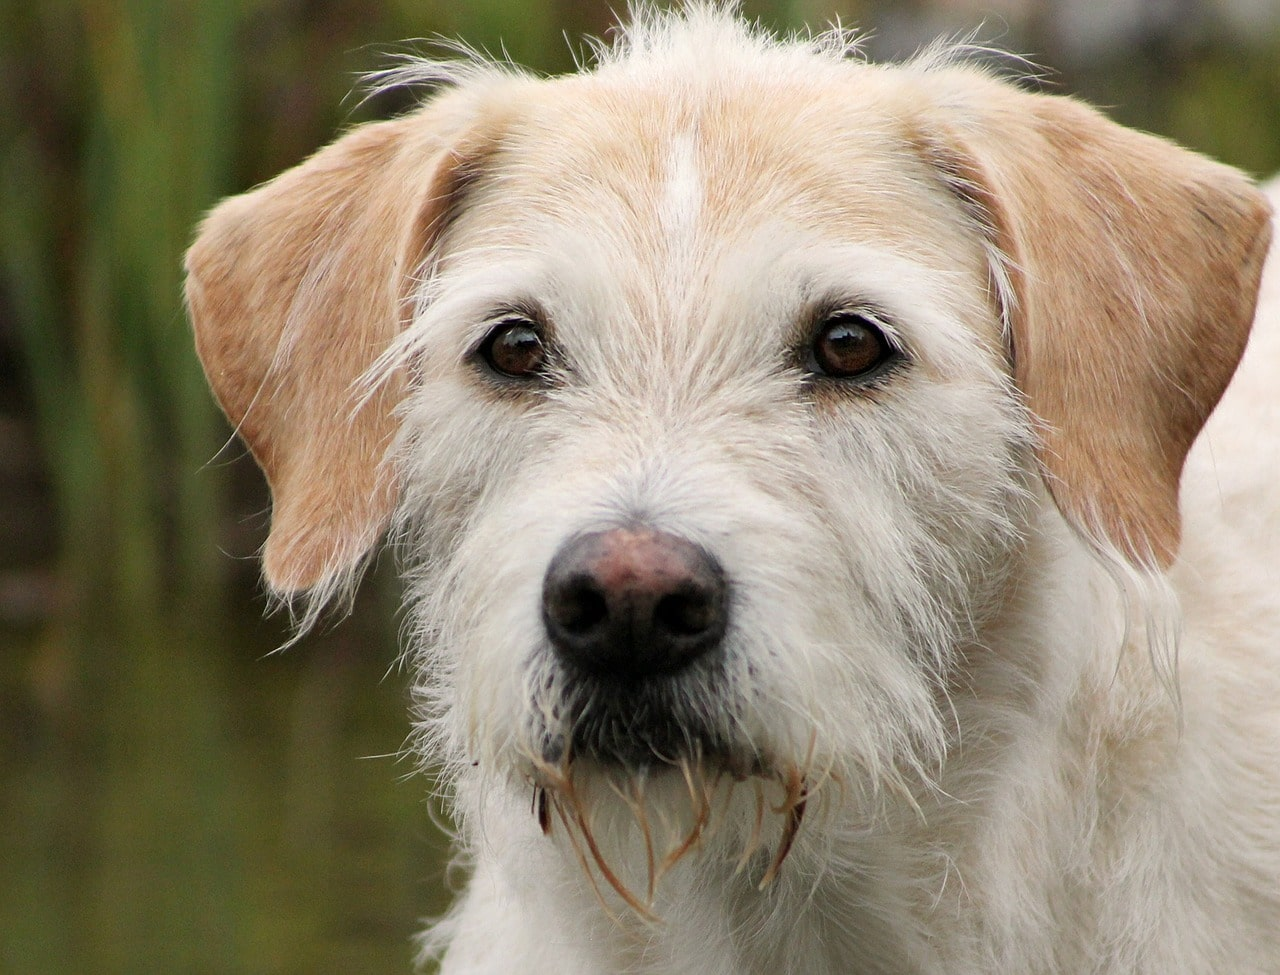 Irish Wolfhound Dog Breed - Complete Profile, History, and Care. https://petspalo.com